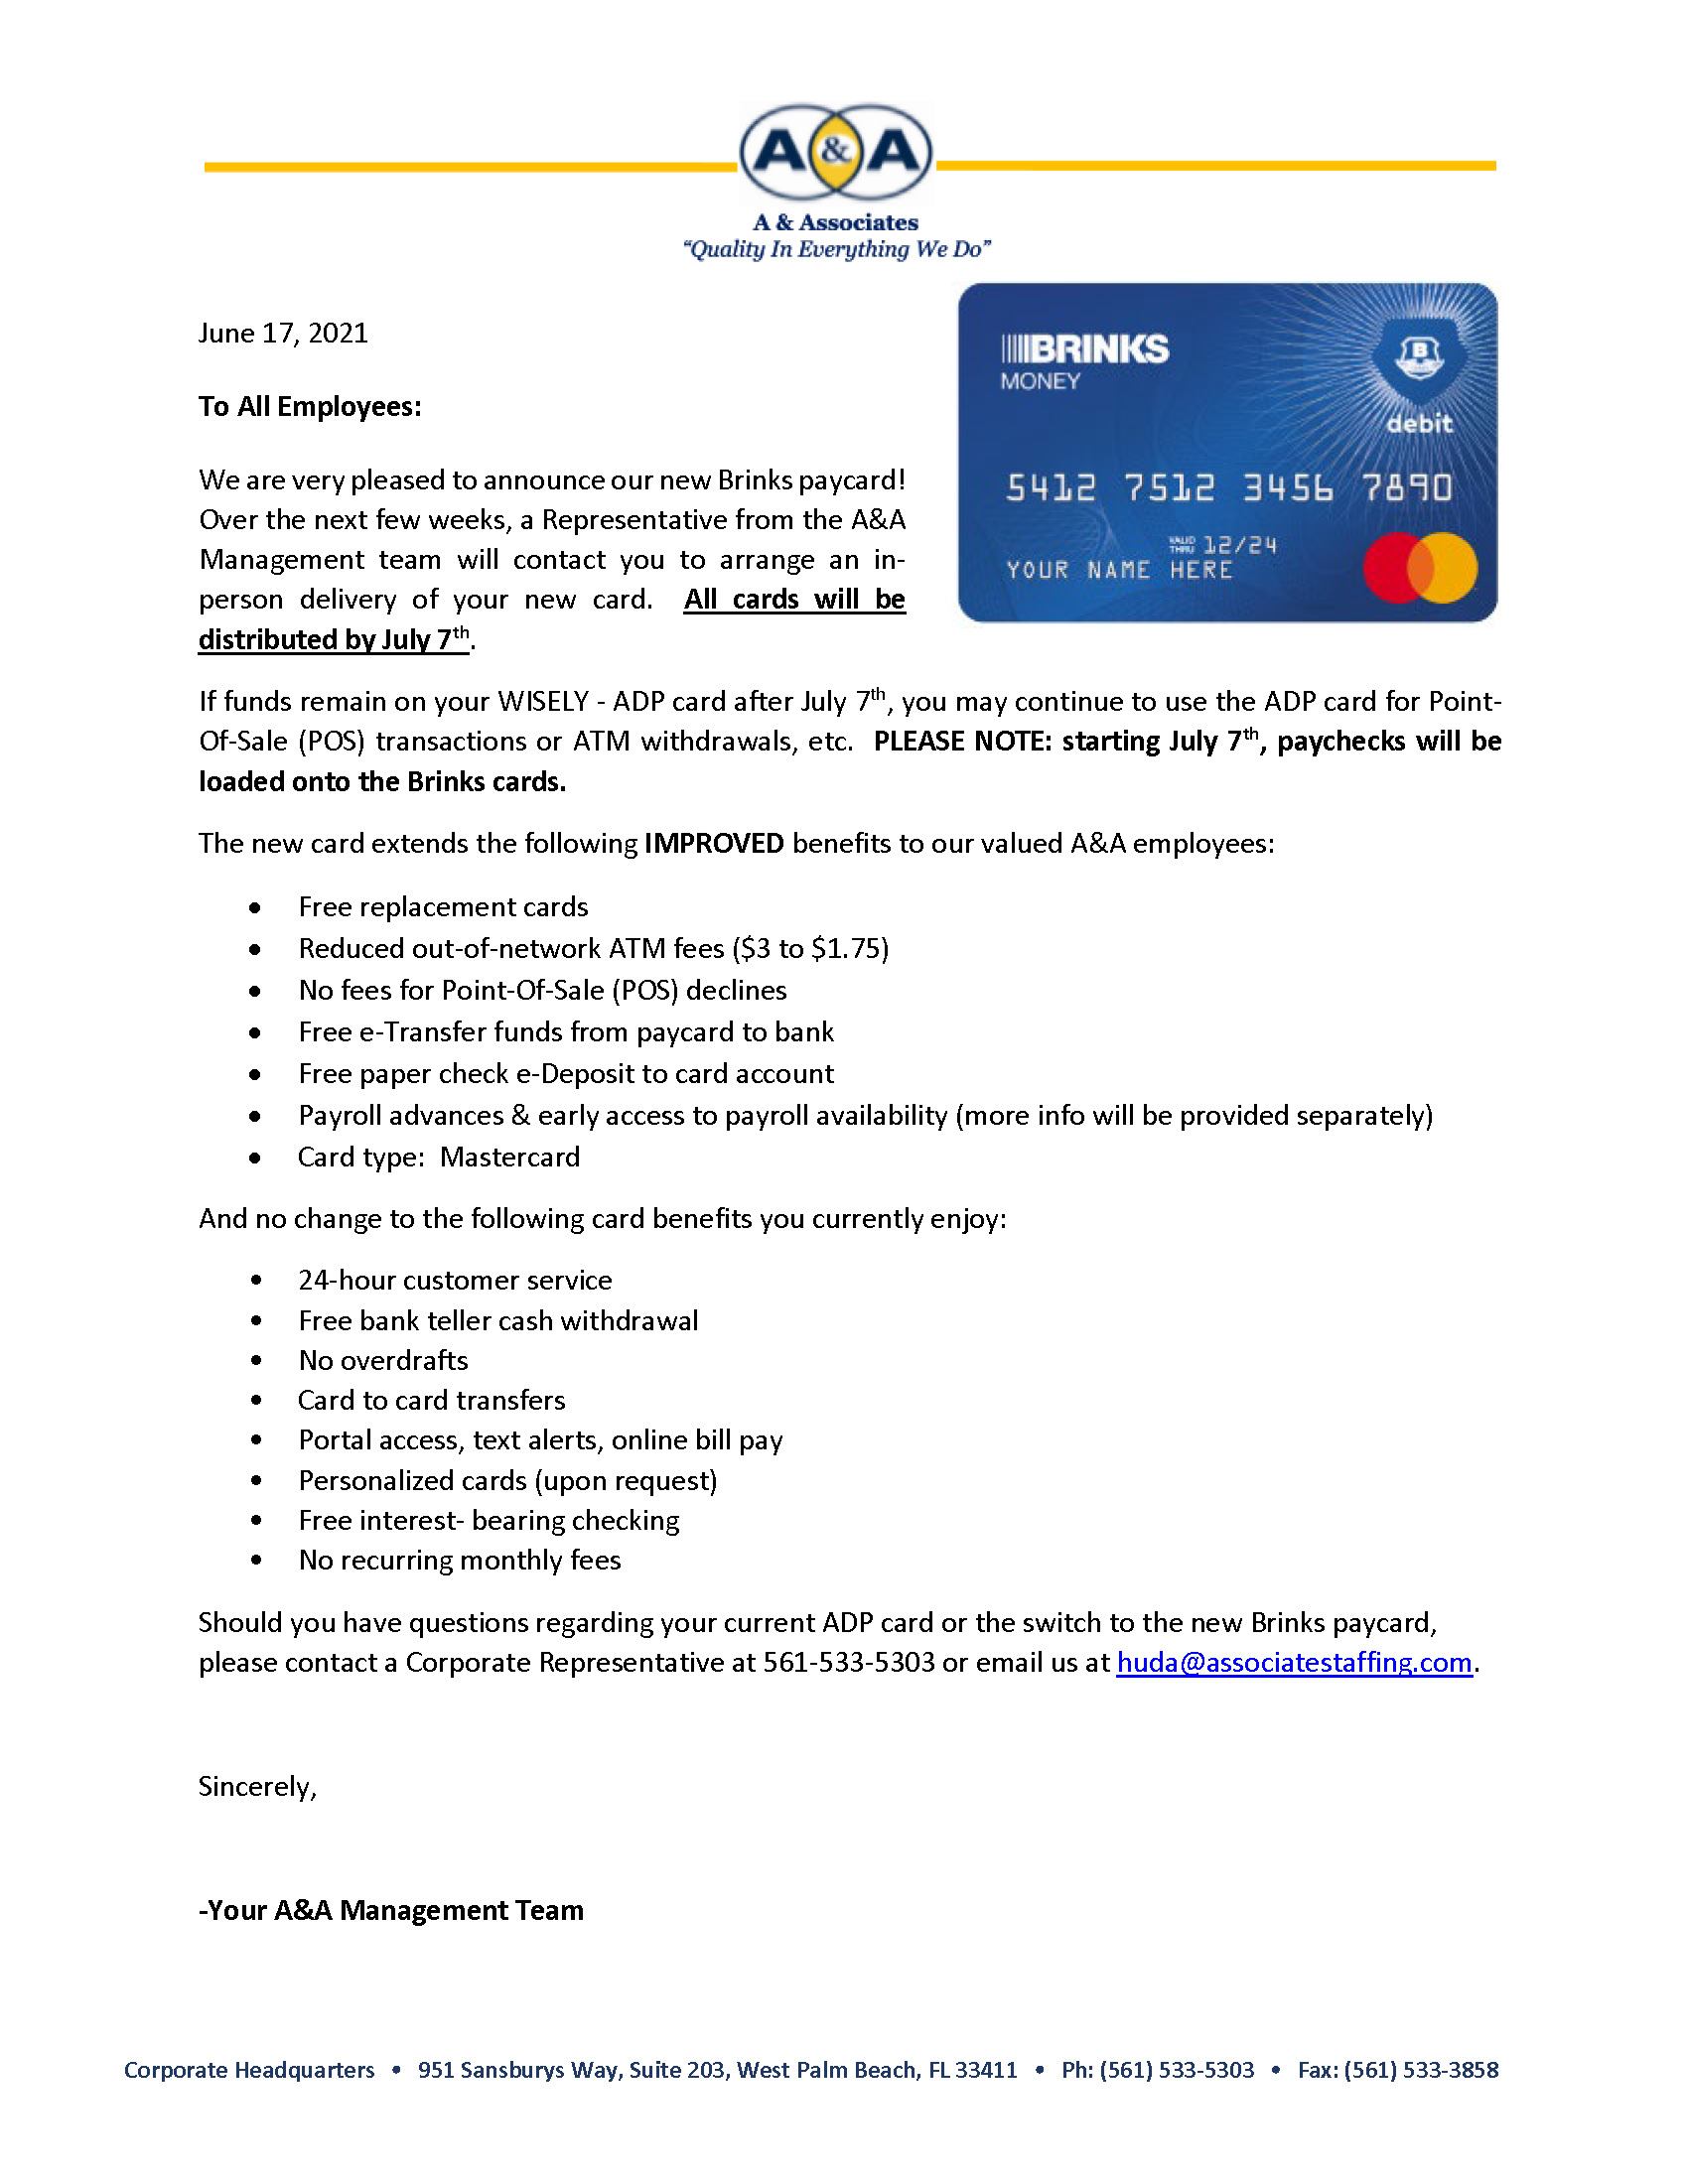 Brinks-Announcement-Letter-All-Employees-1